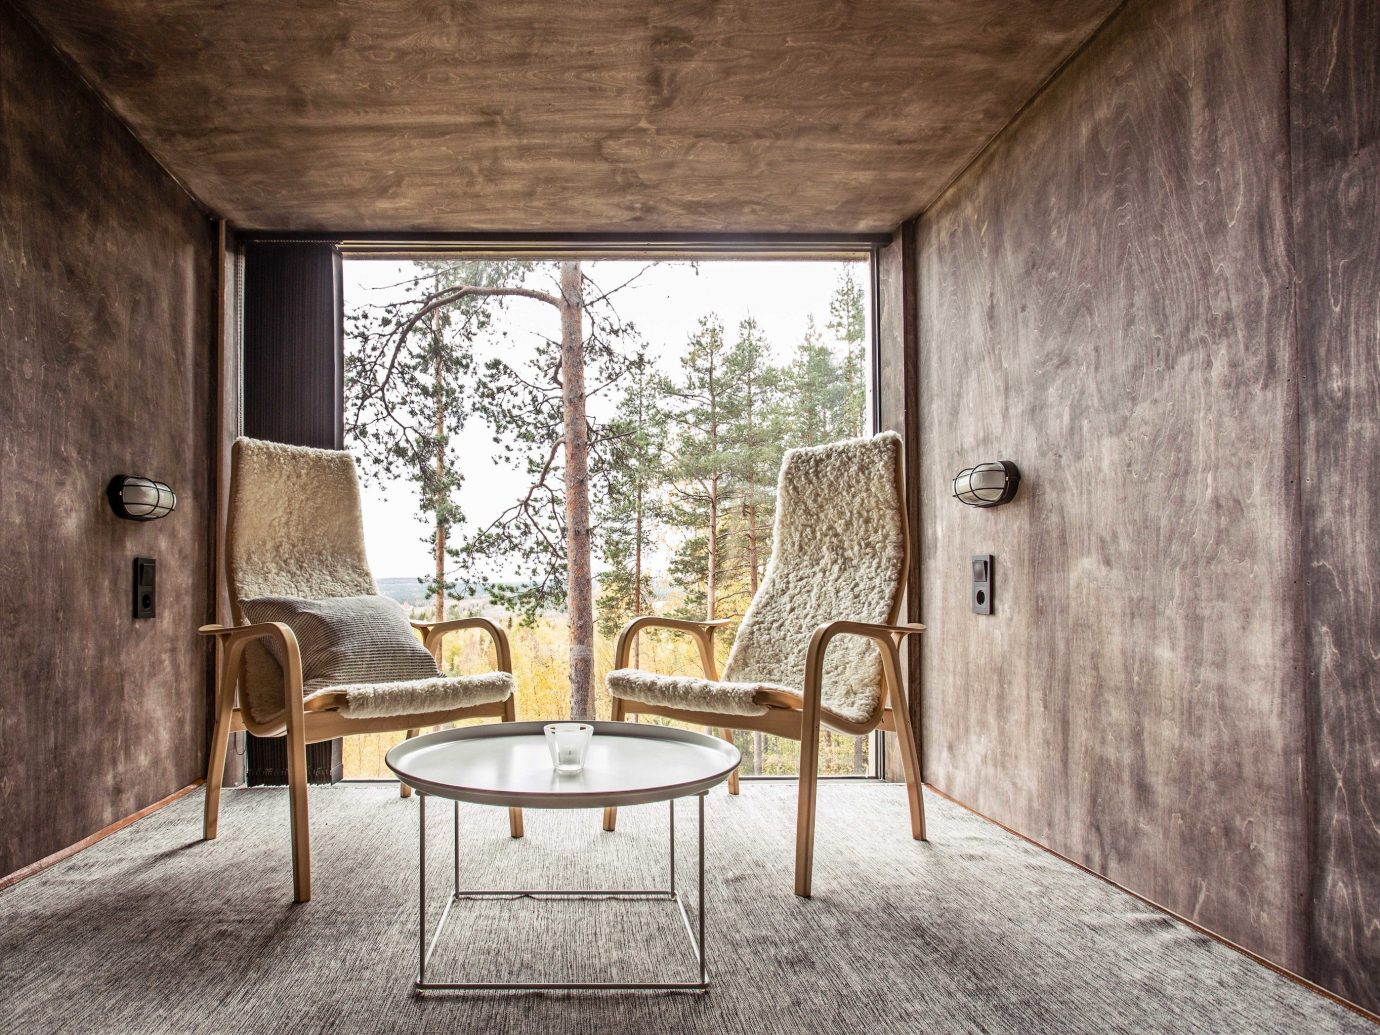 Boutique Hotels Sweden indoor floor room Architecture wall interior design house window home real estate ceiling daylighting estate chair furniture